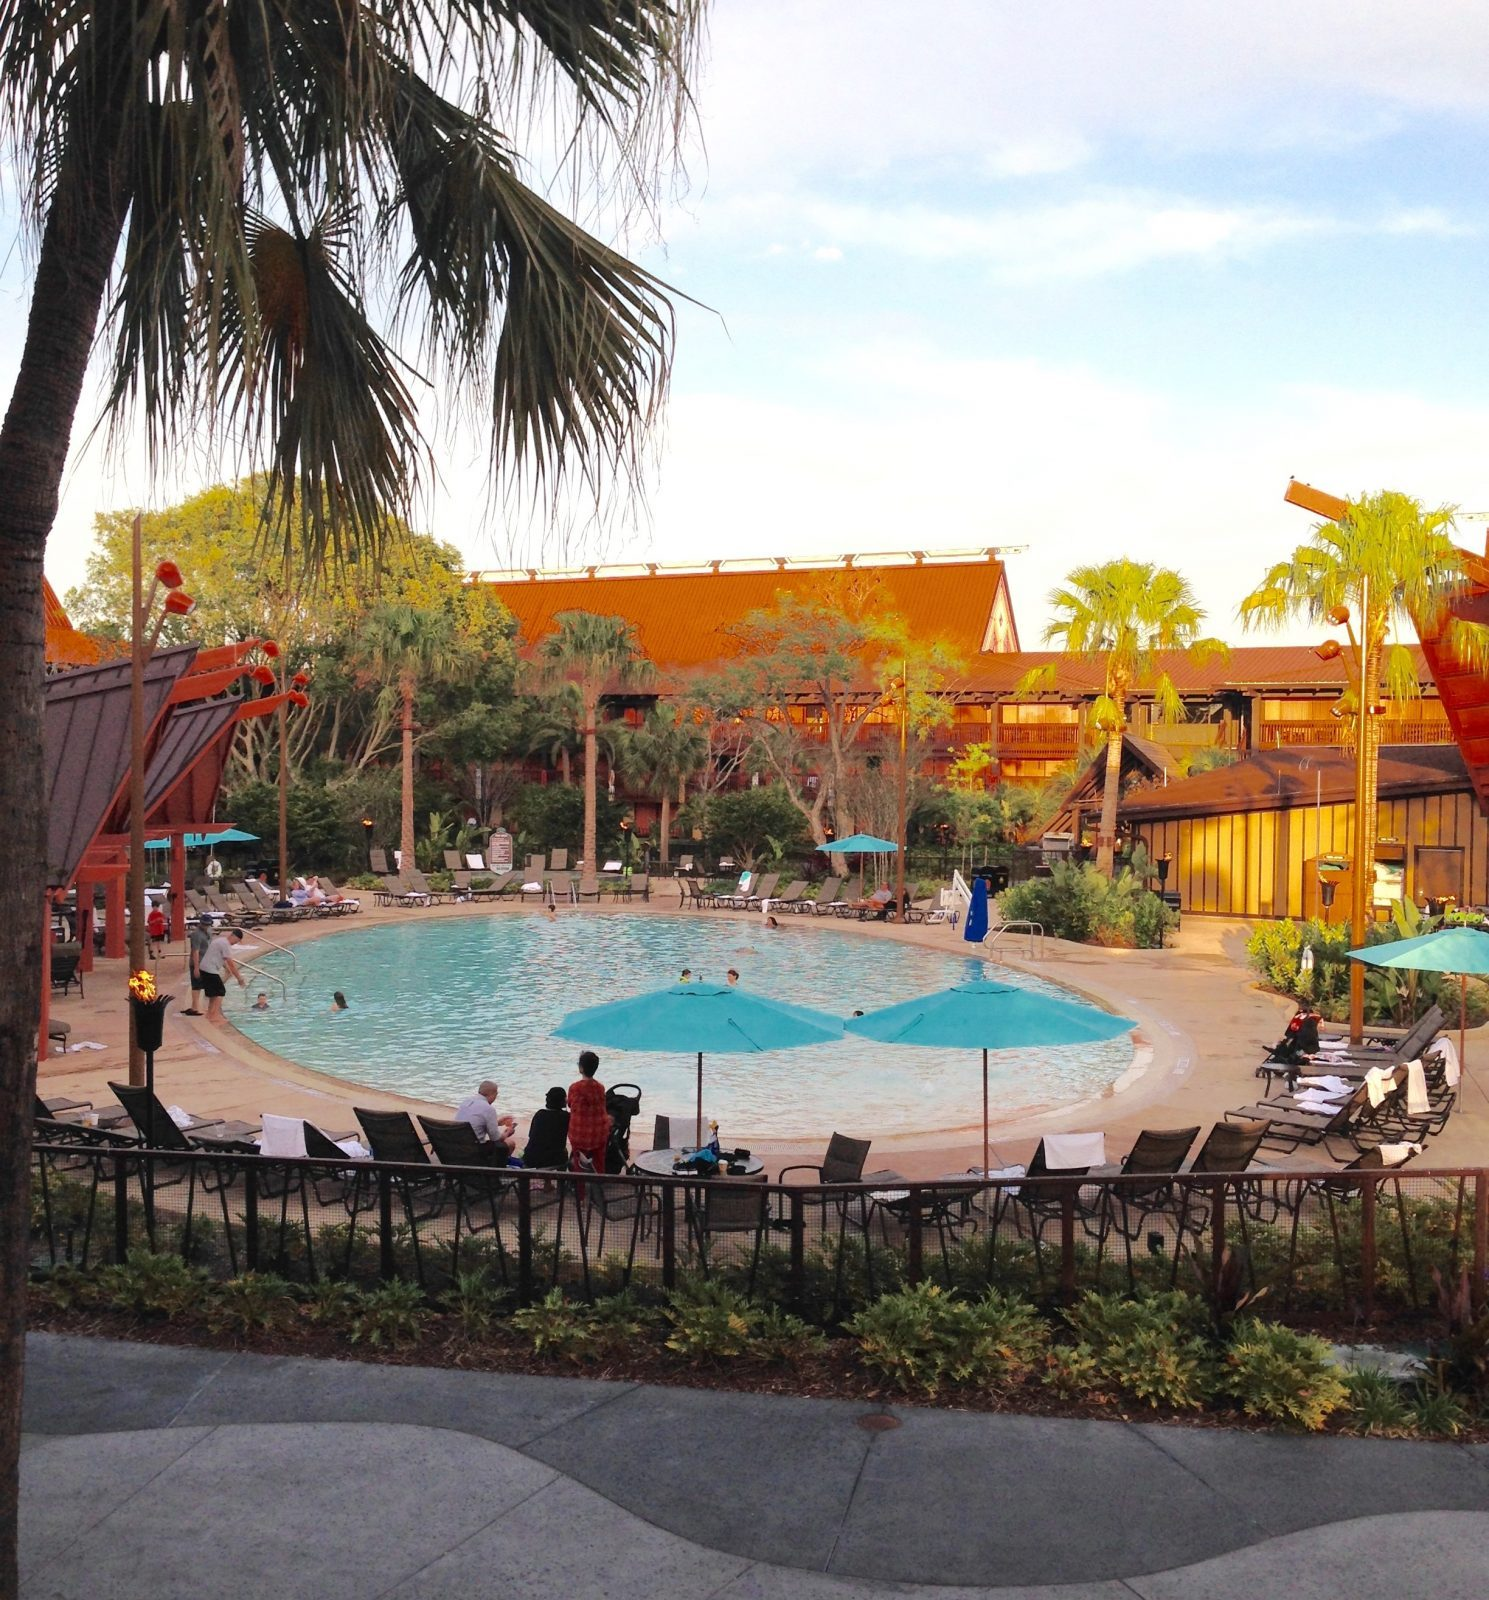 All the details on the amazing new DVC Studio Villas at the Polynesian, as well as updates to the pools, dining, and lobby. Lots of details to help you plan your stay in a DVC room or just visit the resort. A Disney World Resort Review from The Frugal South.